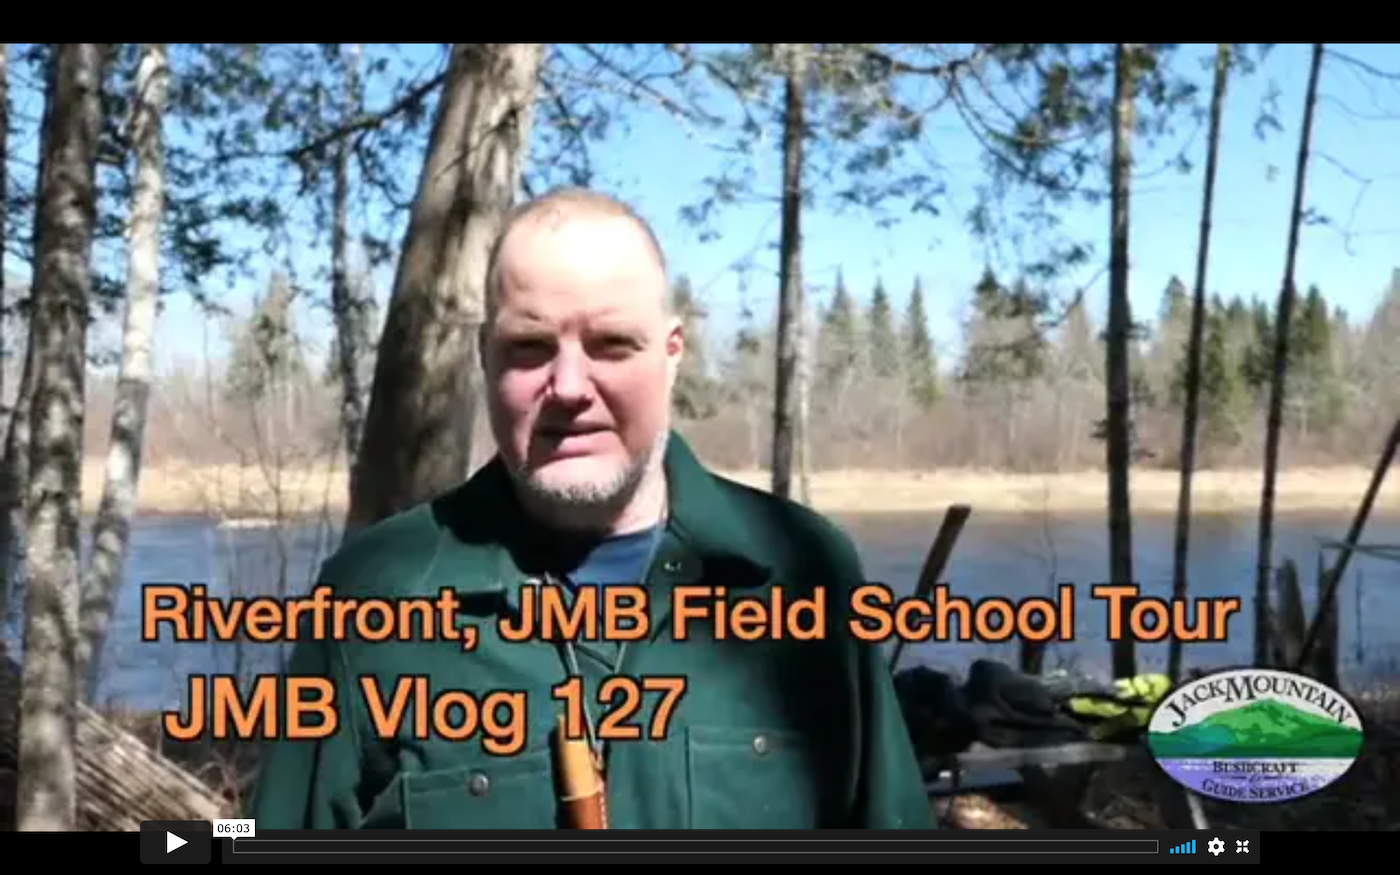 Field School Riverfront Tour | JMB Vlog 127